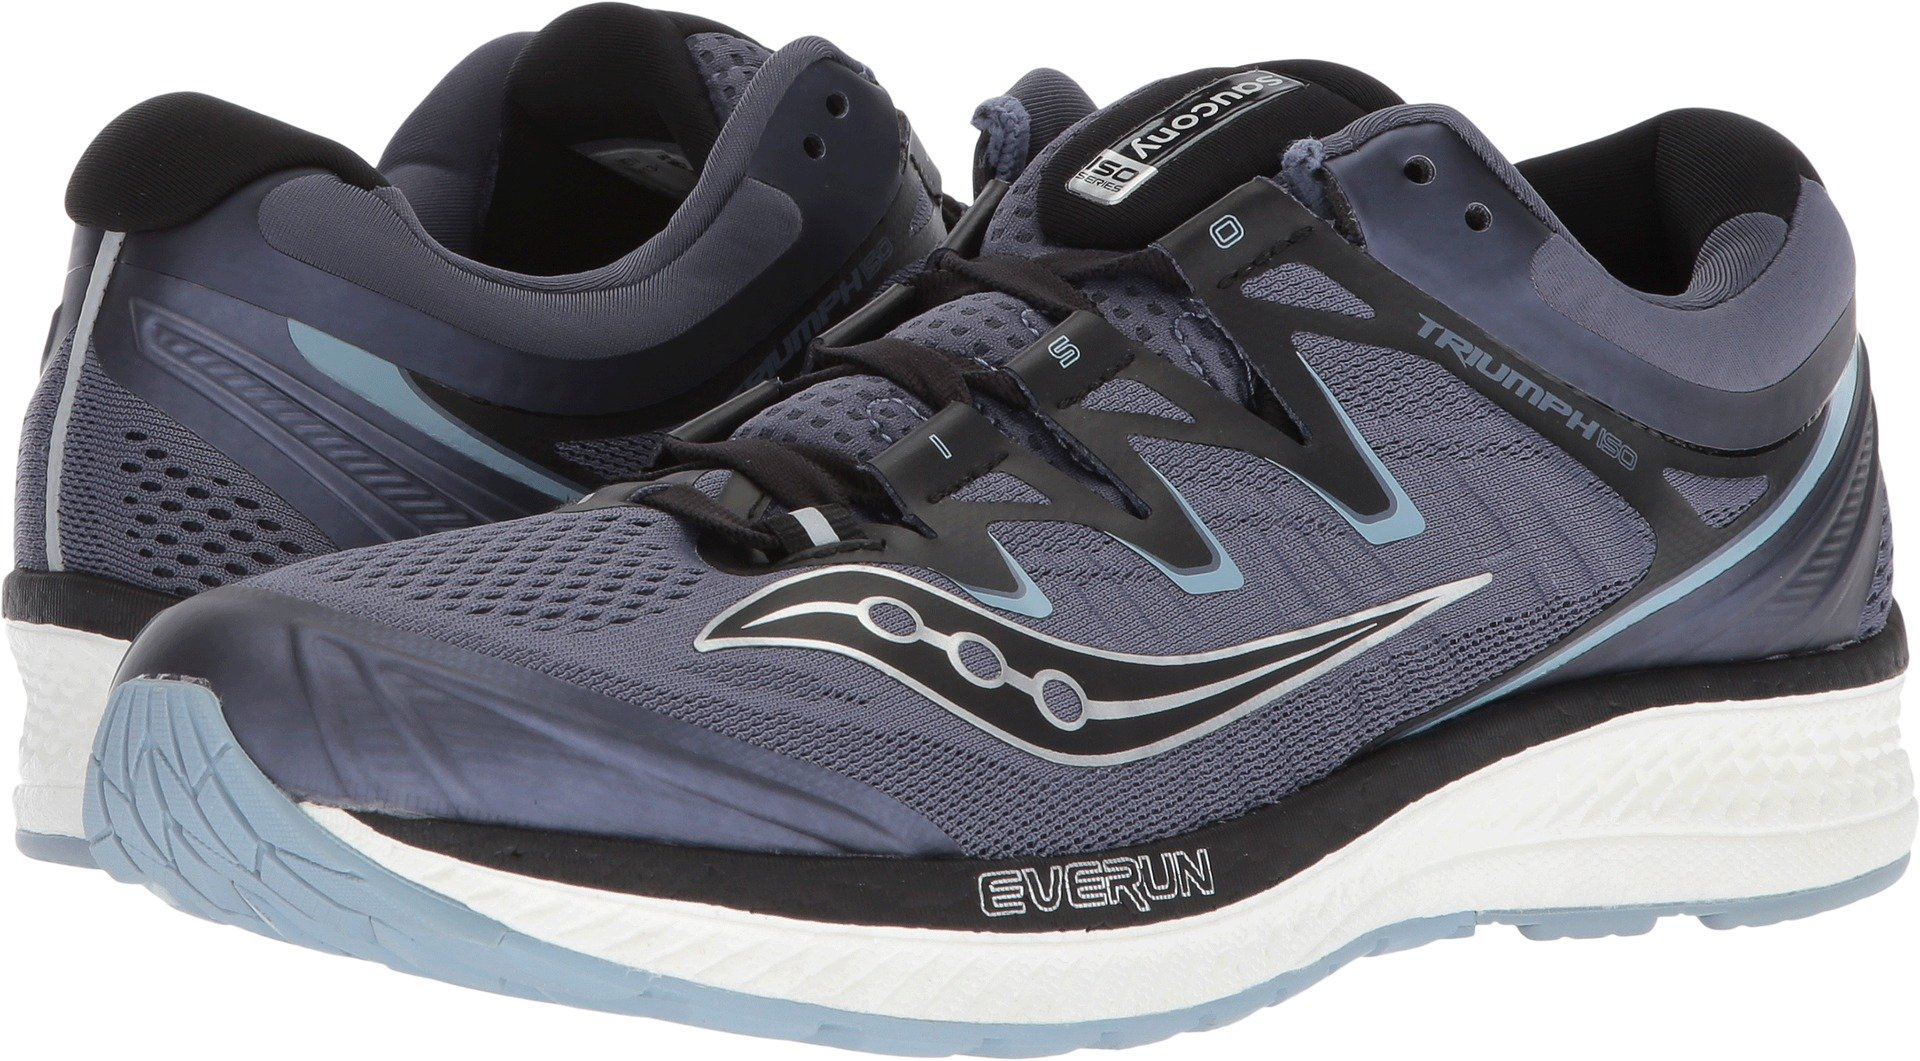 Saucony Men's Triumph ISO 4 Running Shoe, Grey/Black, 12 Medium US